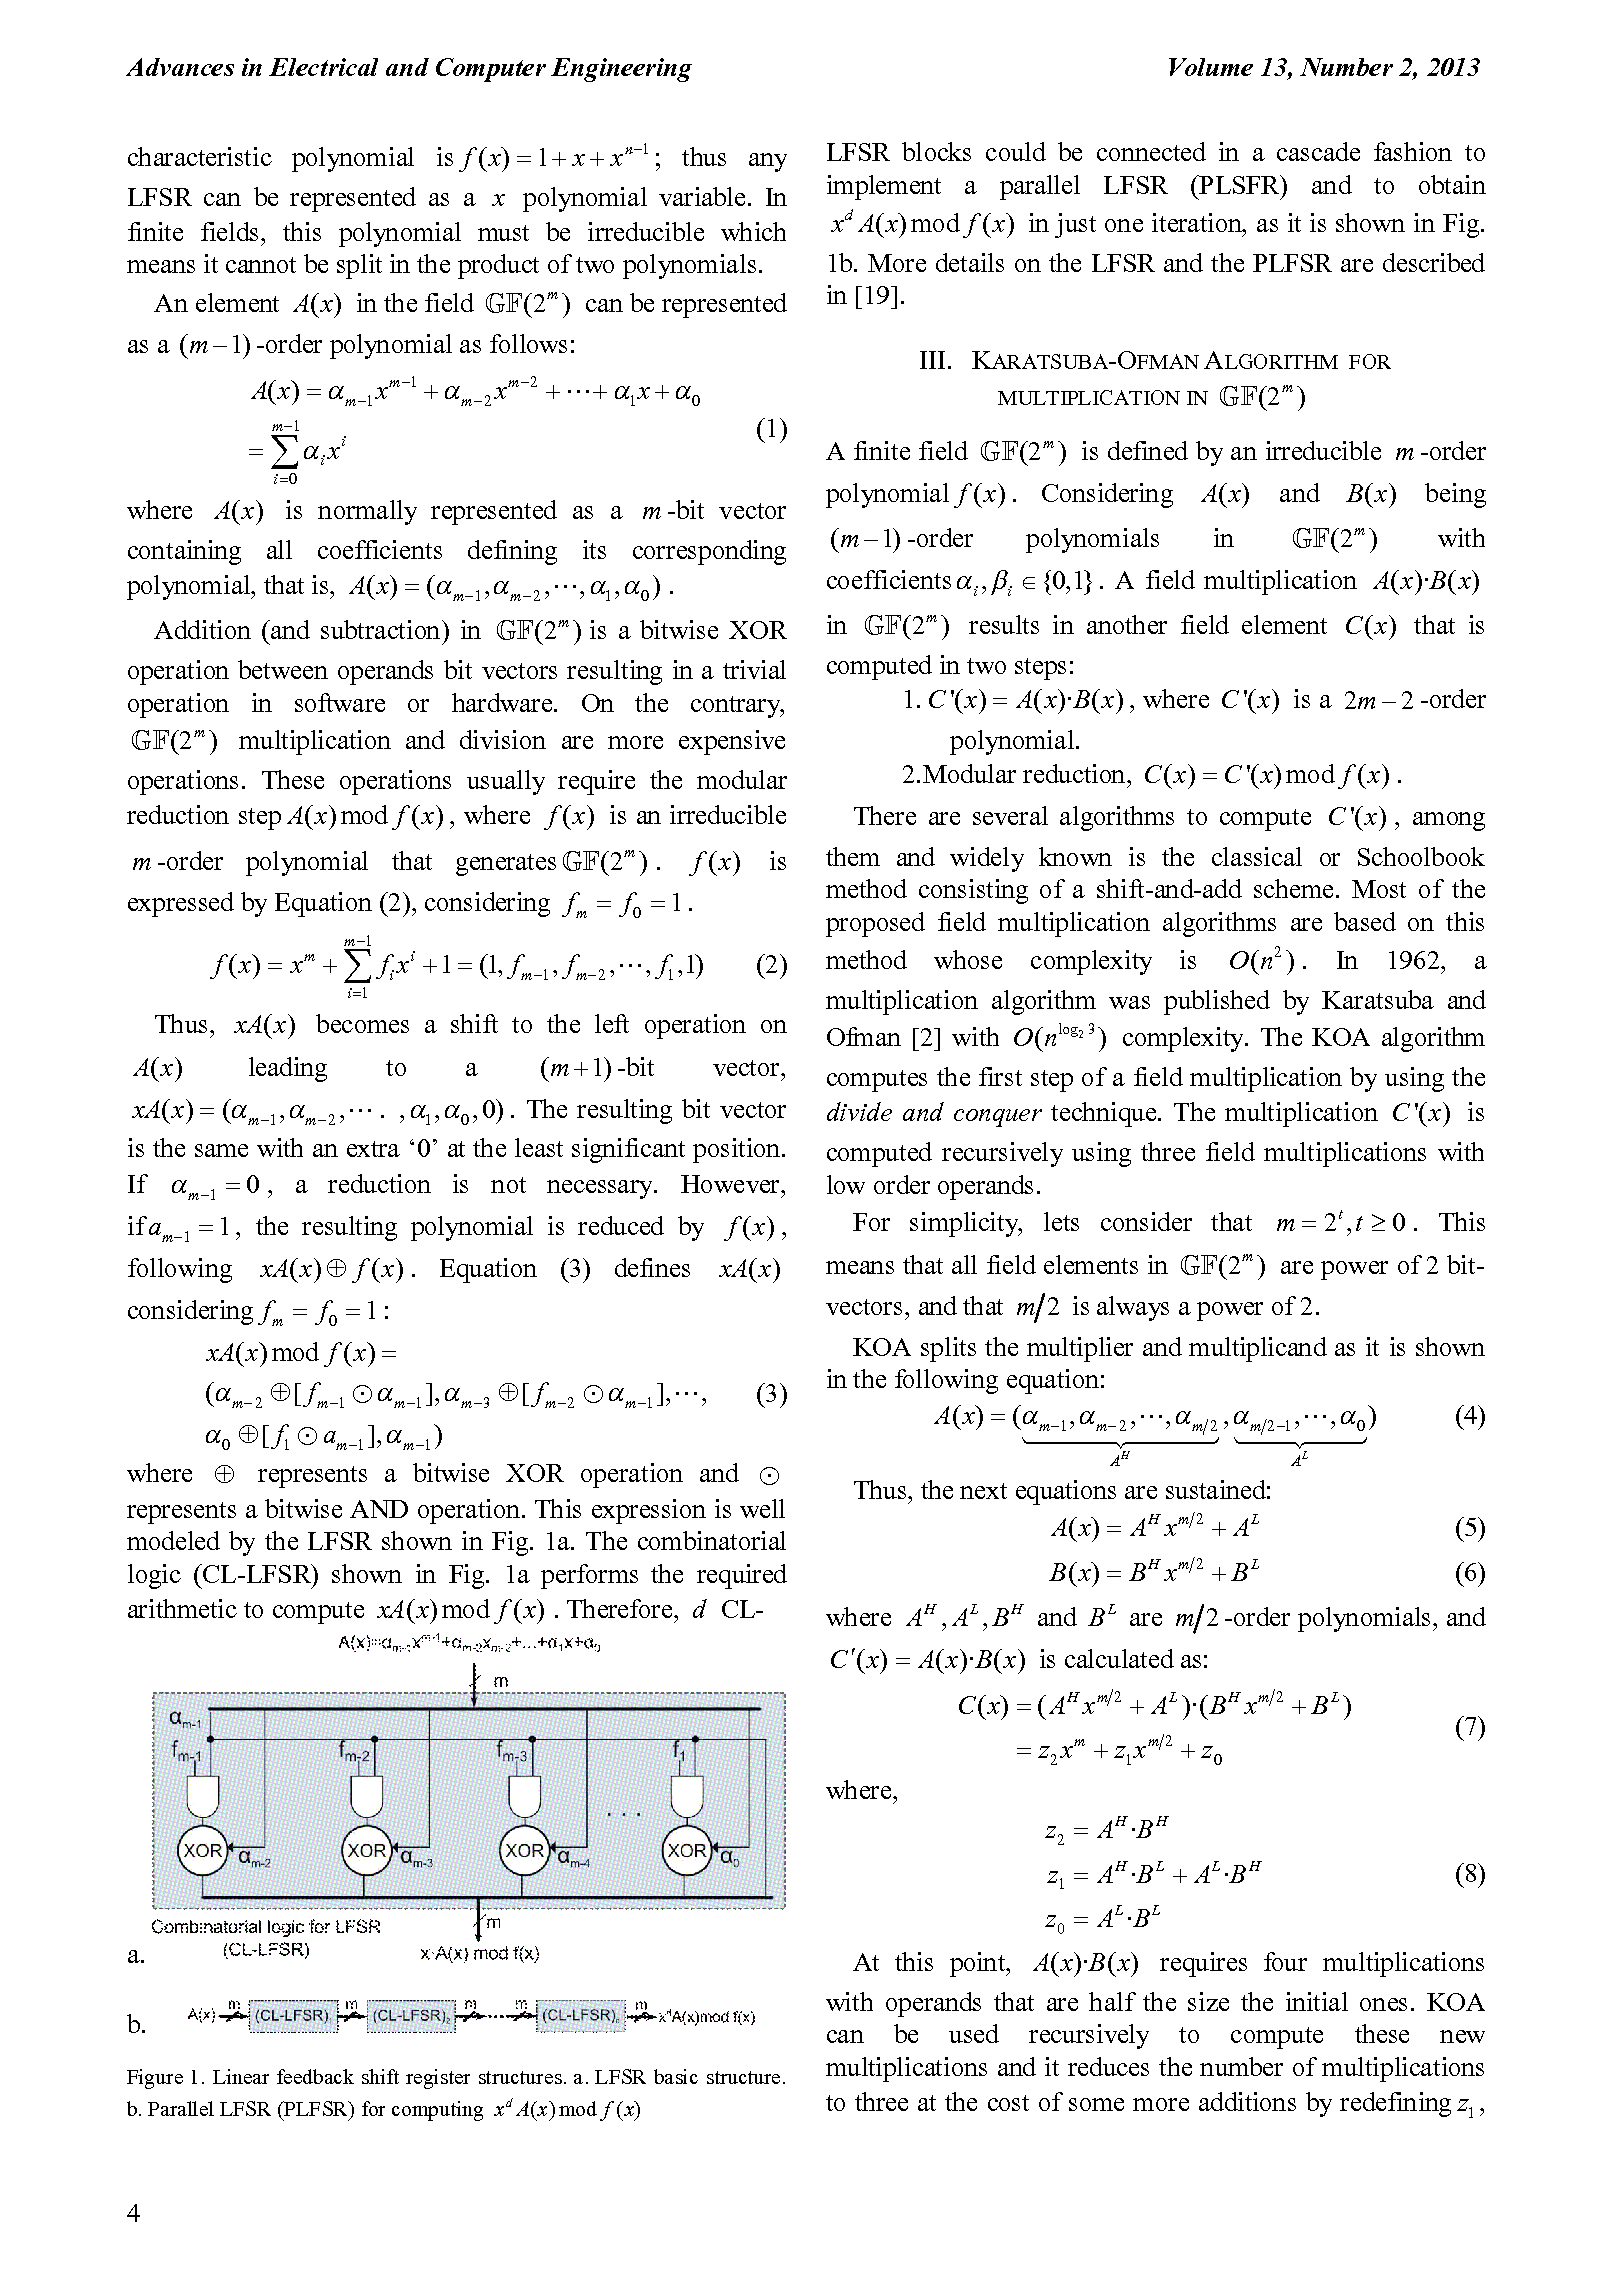 PDF Quickview for paper with DOI:10.4316/AECE.2013.02001